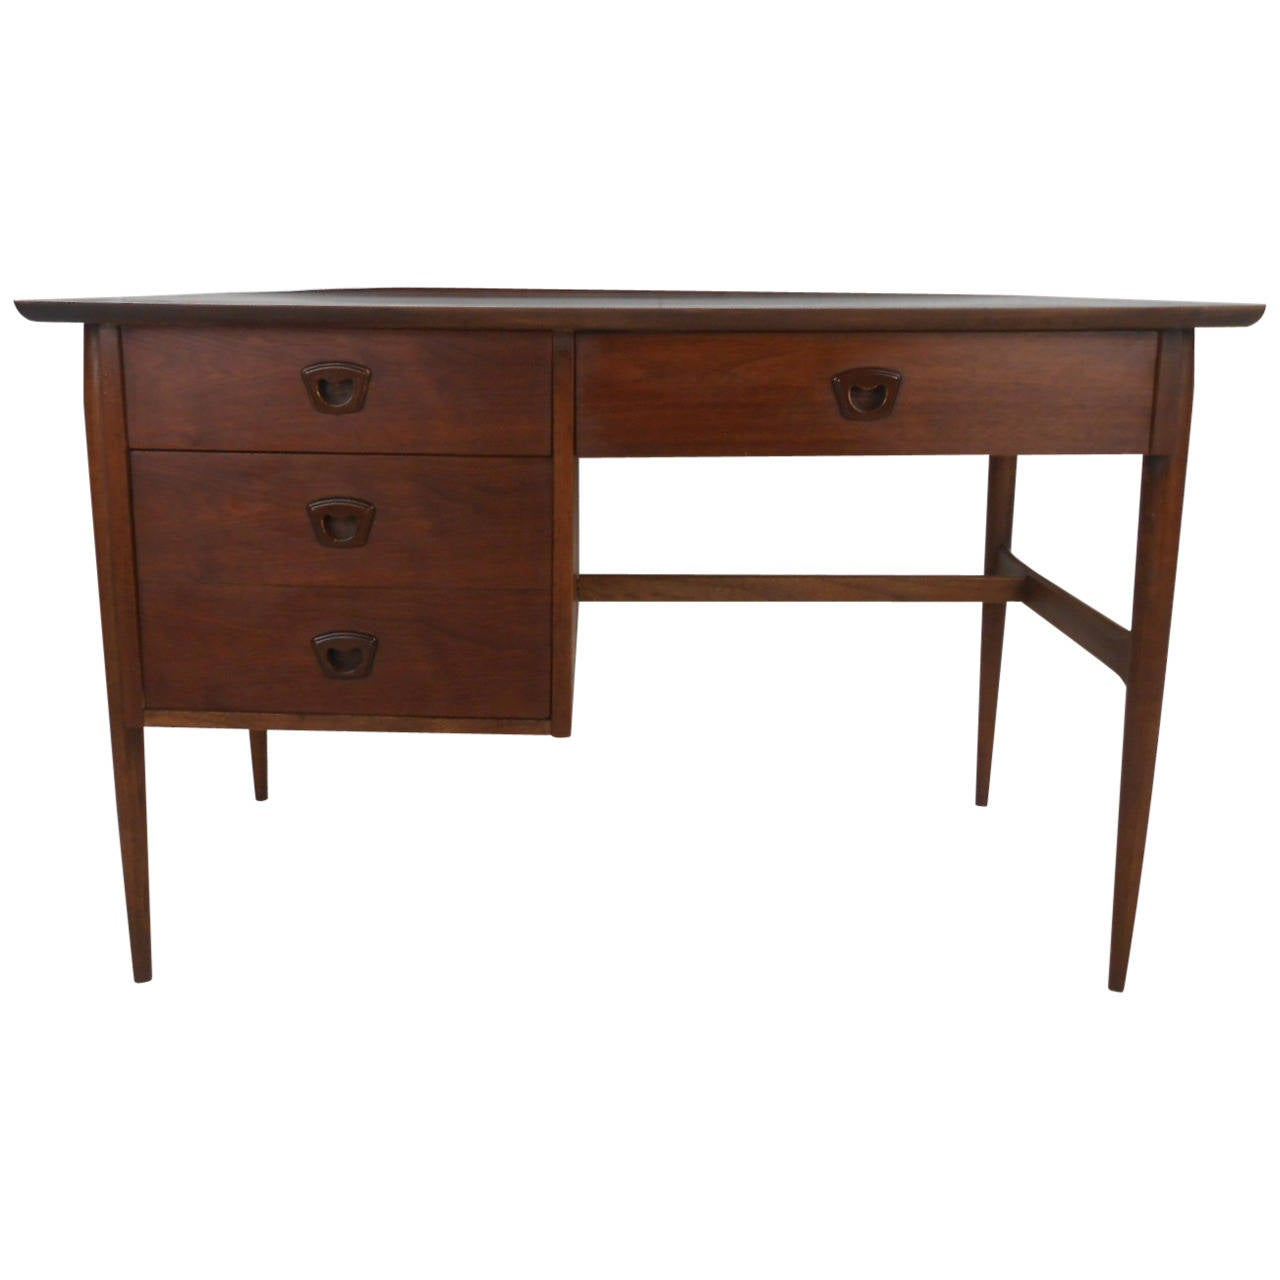 Bassett furniture walnut desk for sale at 1stdibs for Bassett furniture